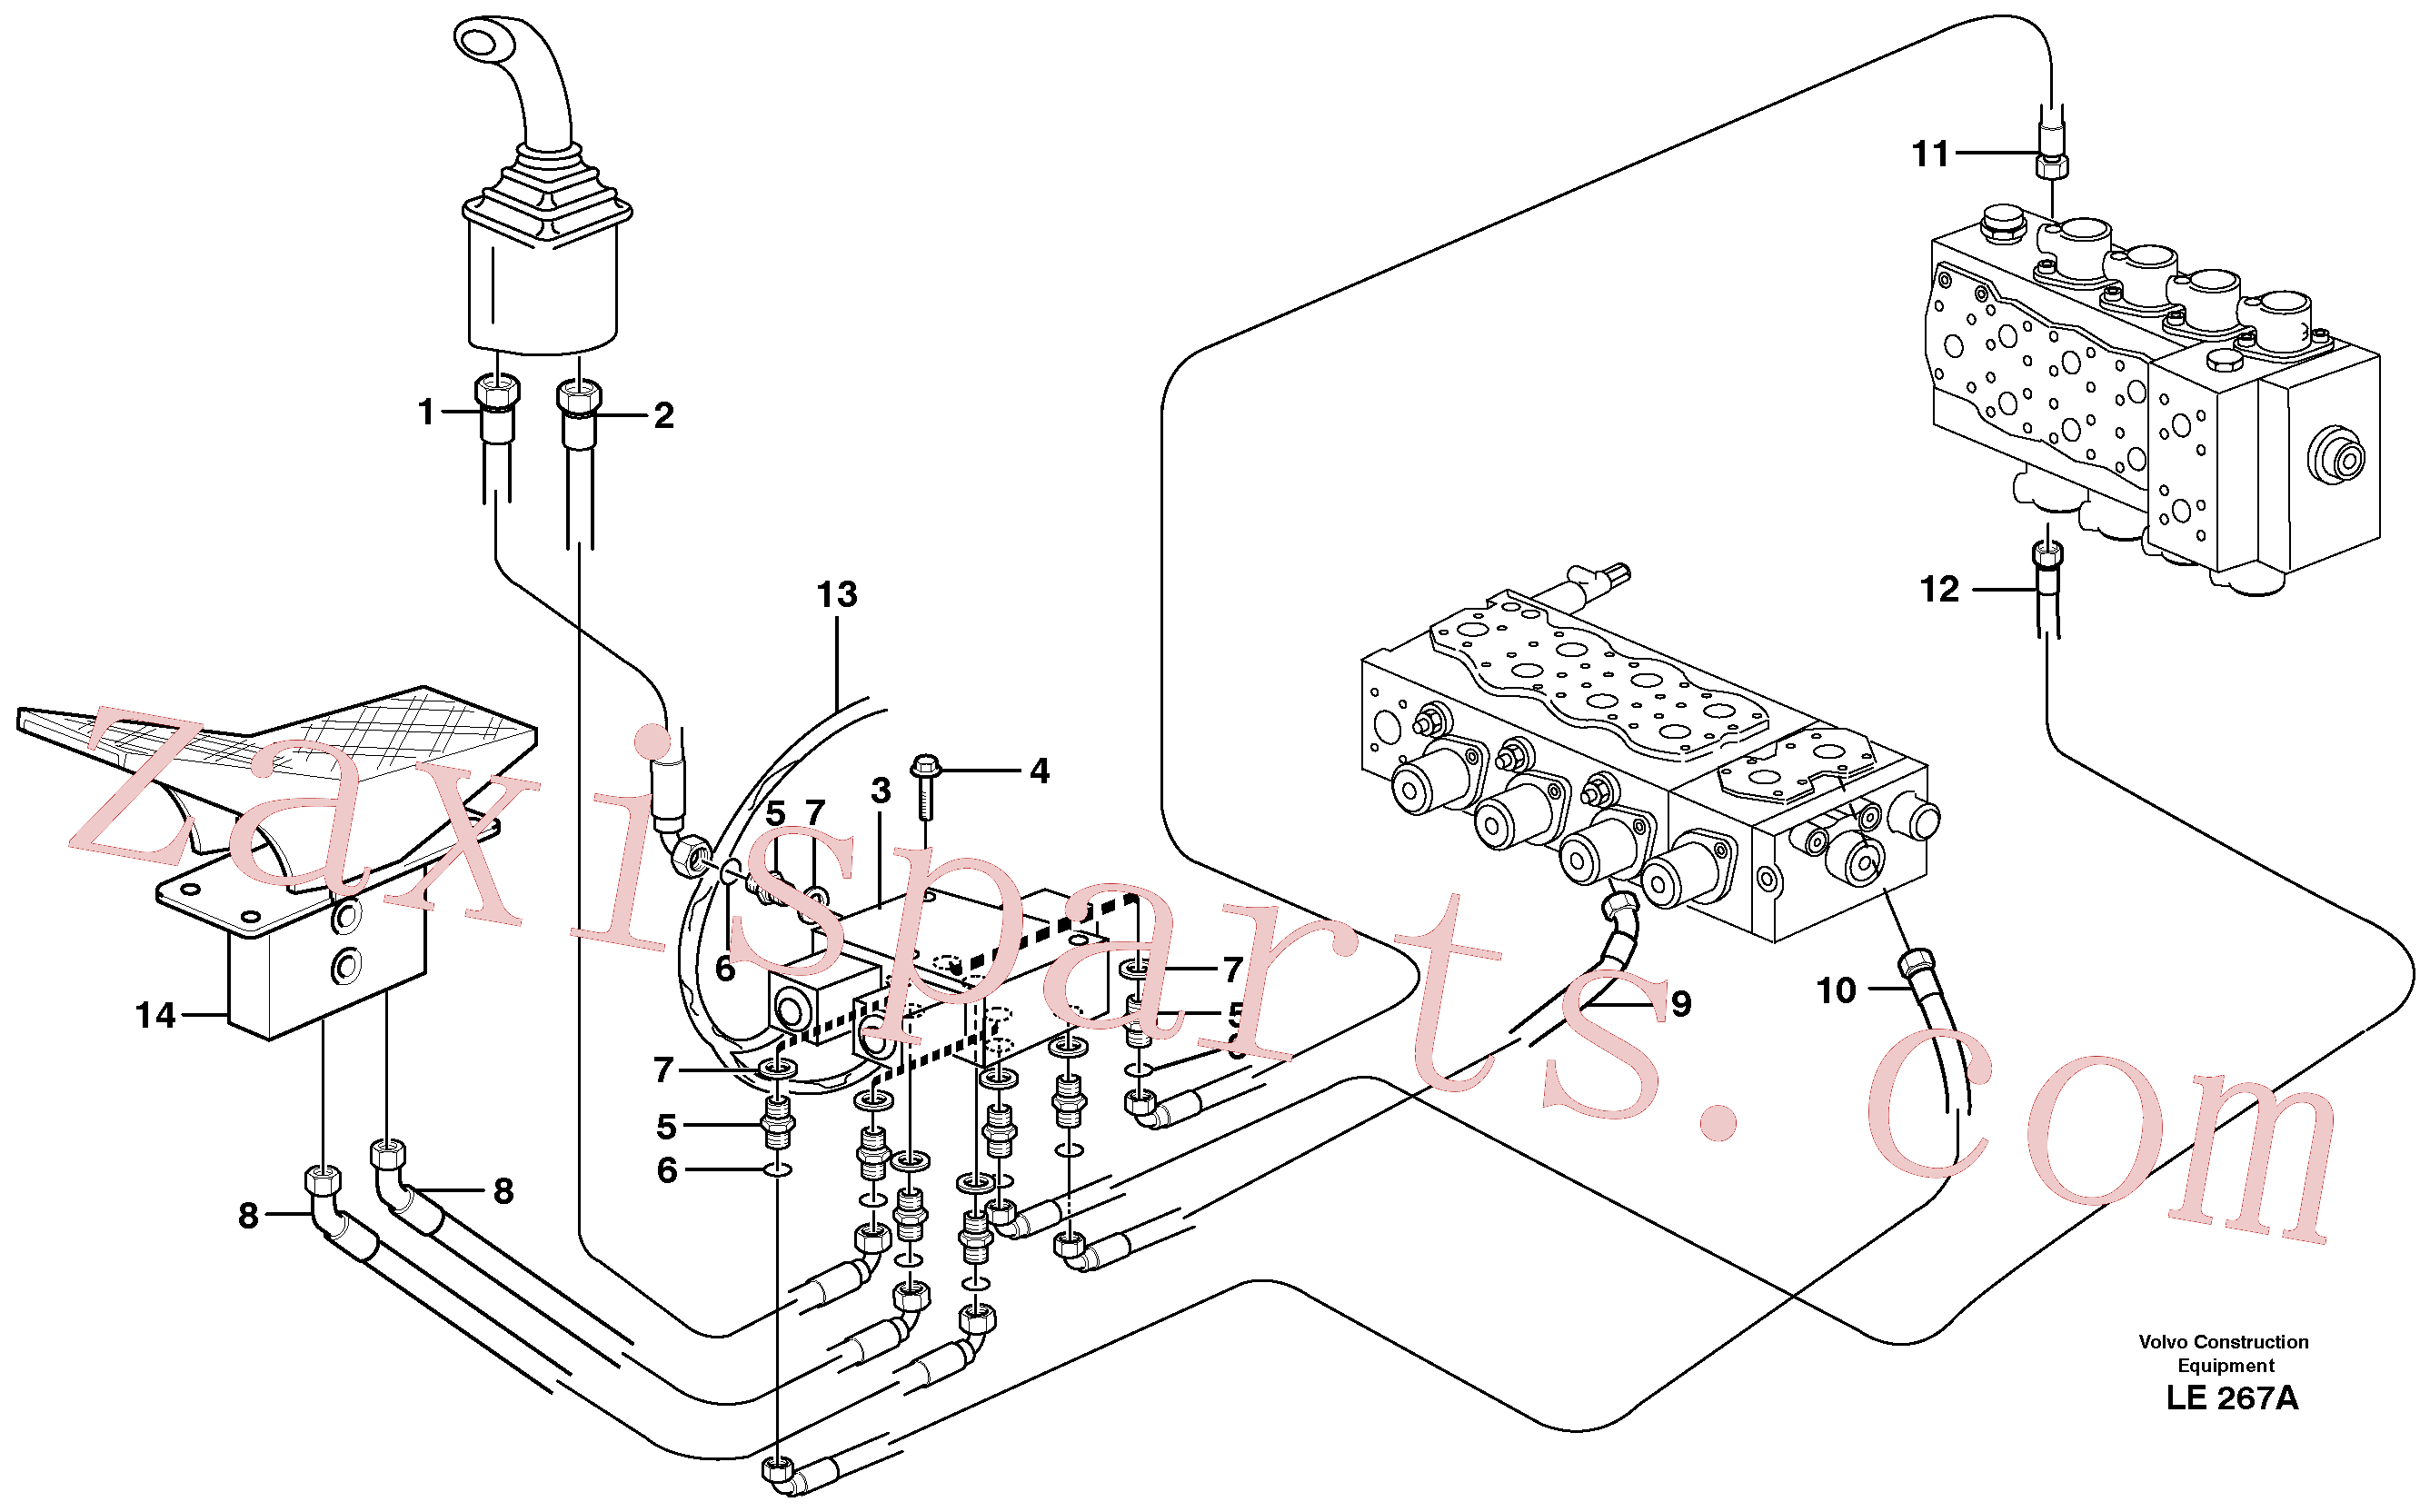 VOE14346787 for Volvo Servo hydraulics, grab bucket(LE267A assembly)